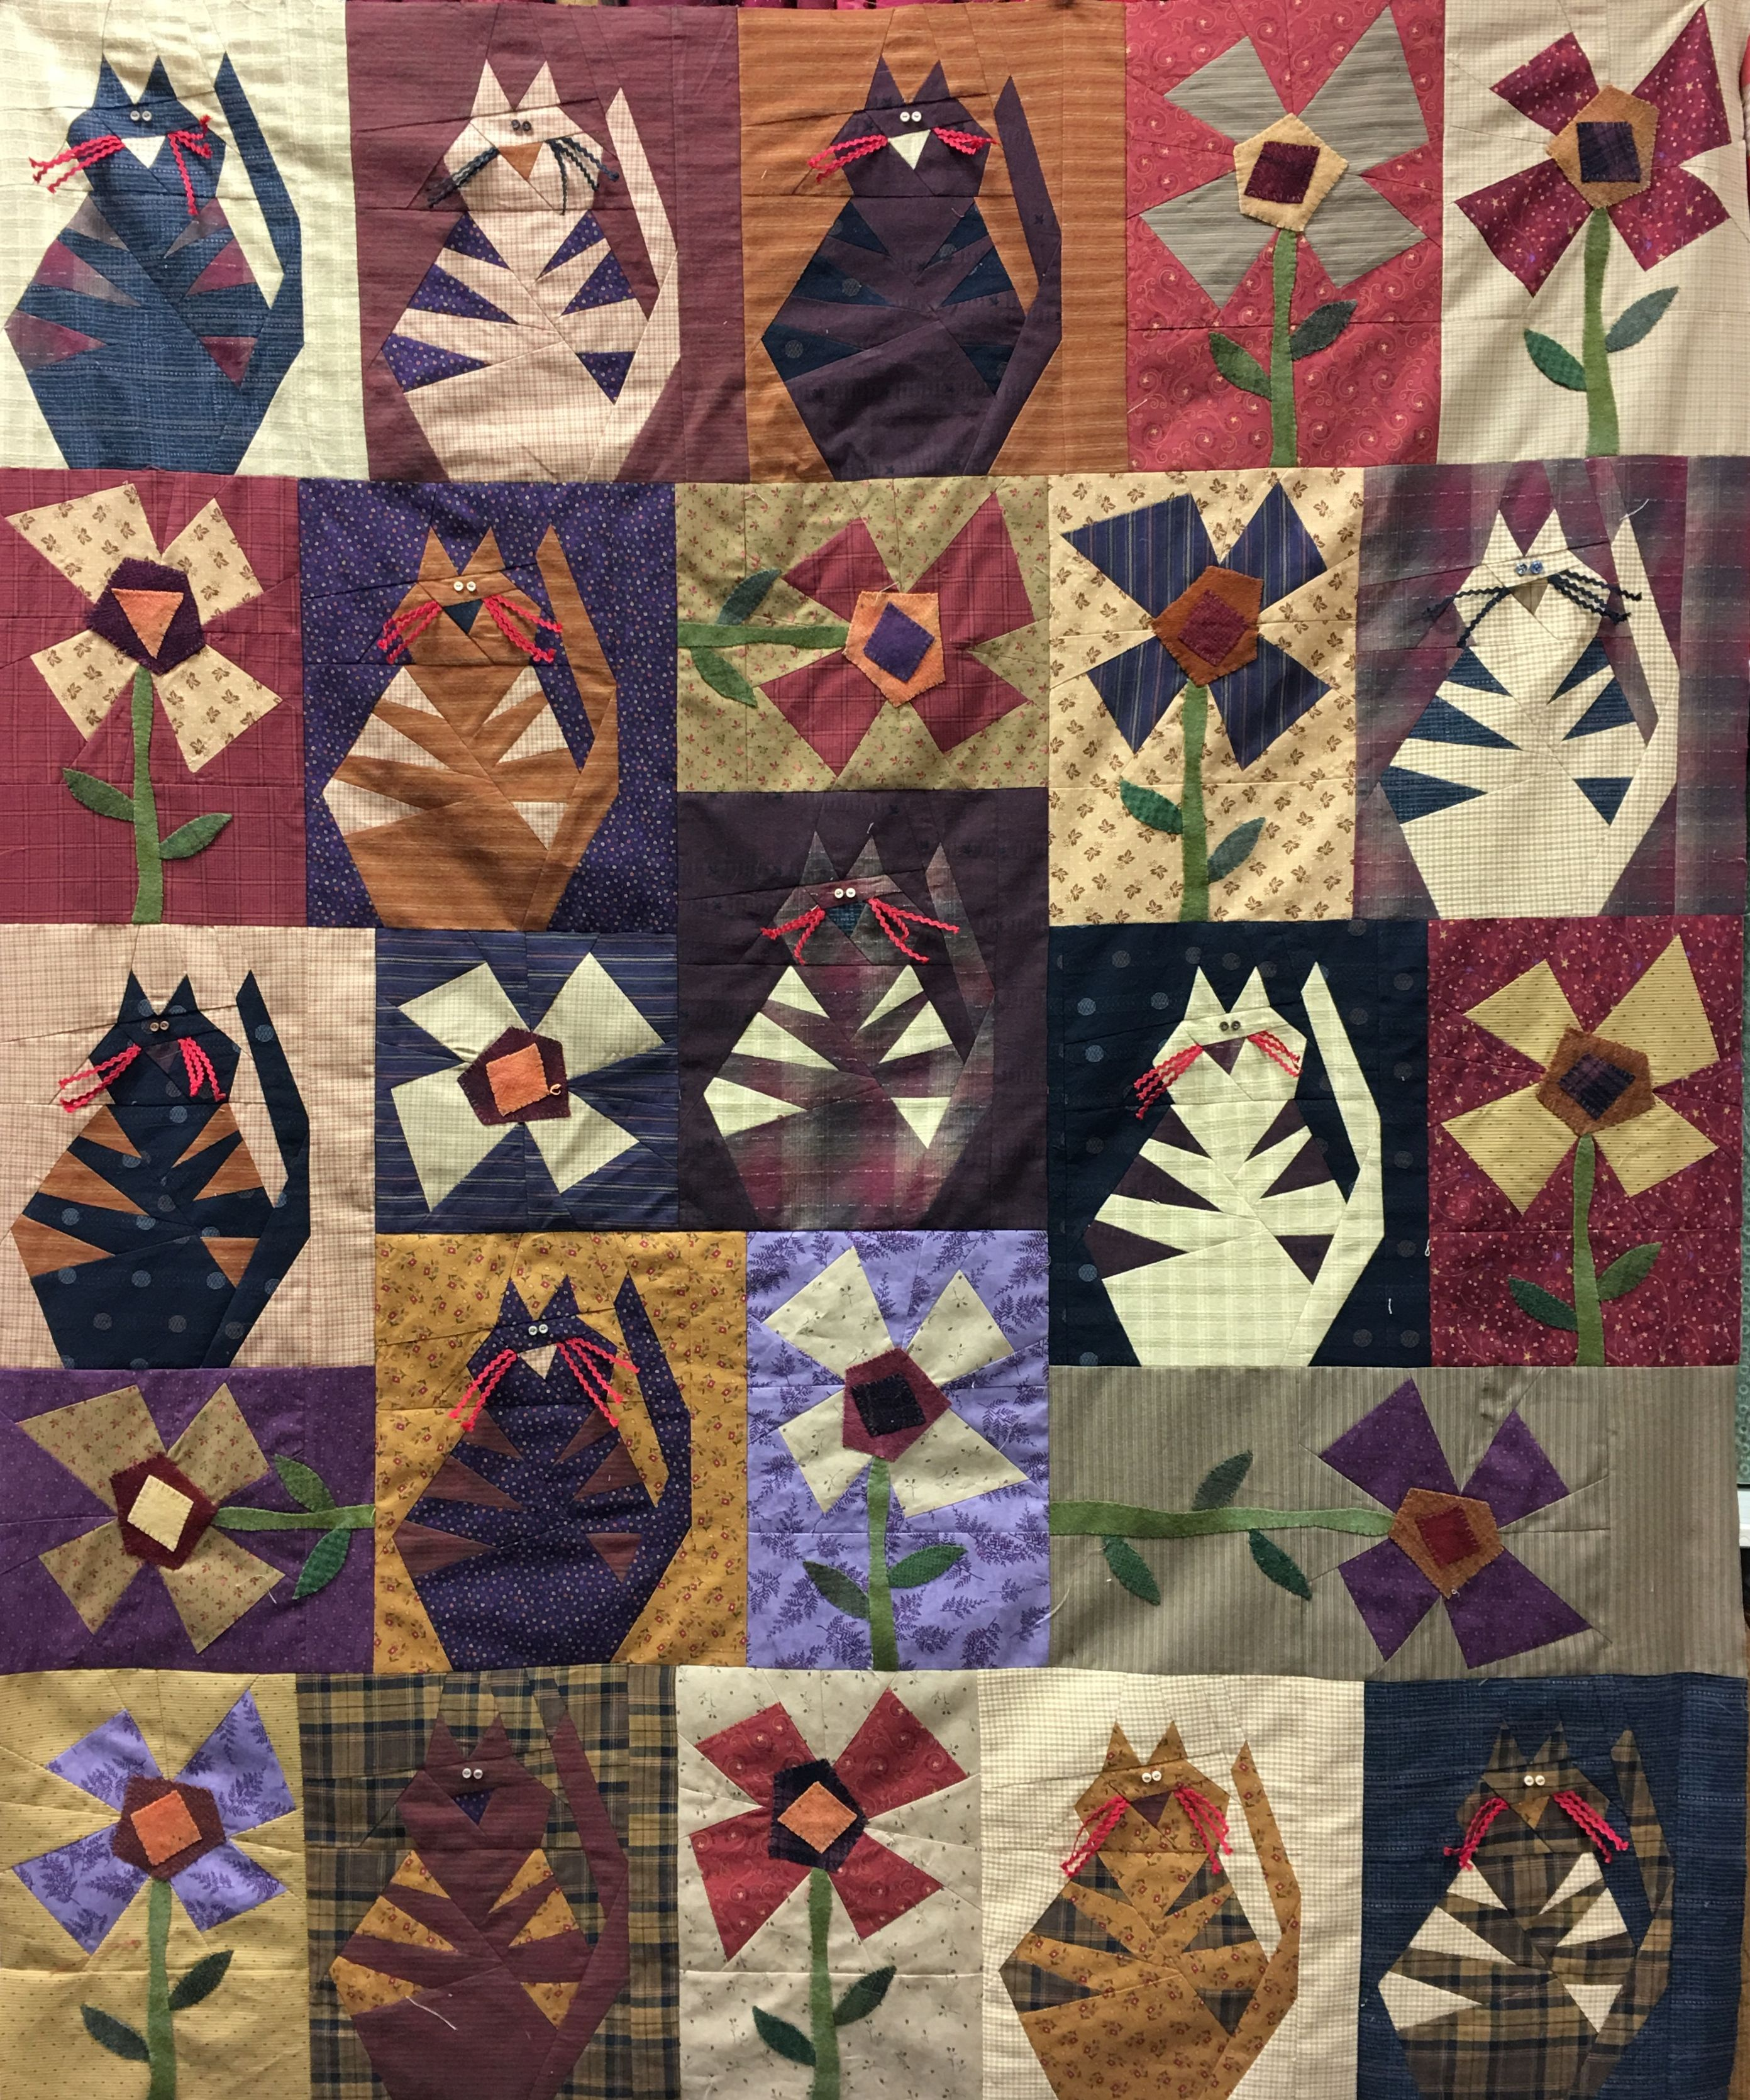 Pin on One Sister Designs Quilts by Rae Nesbitt